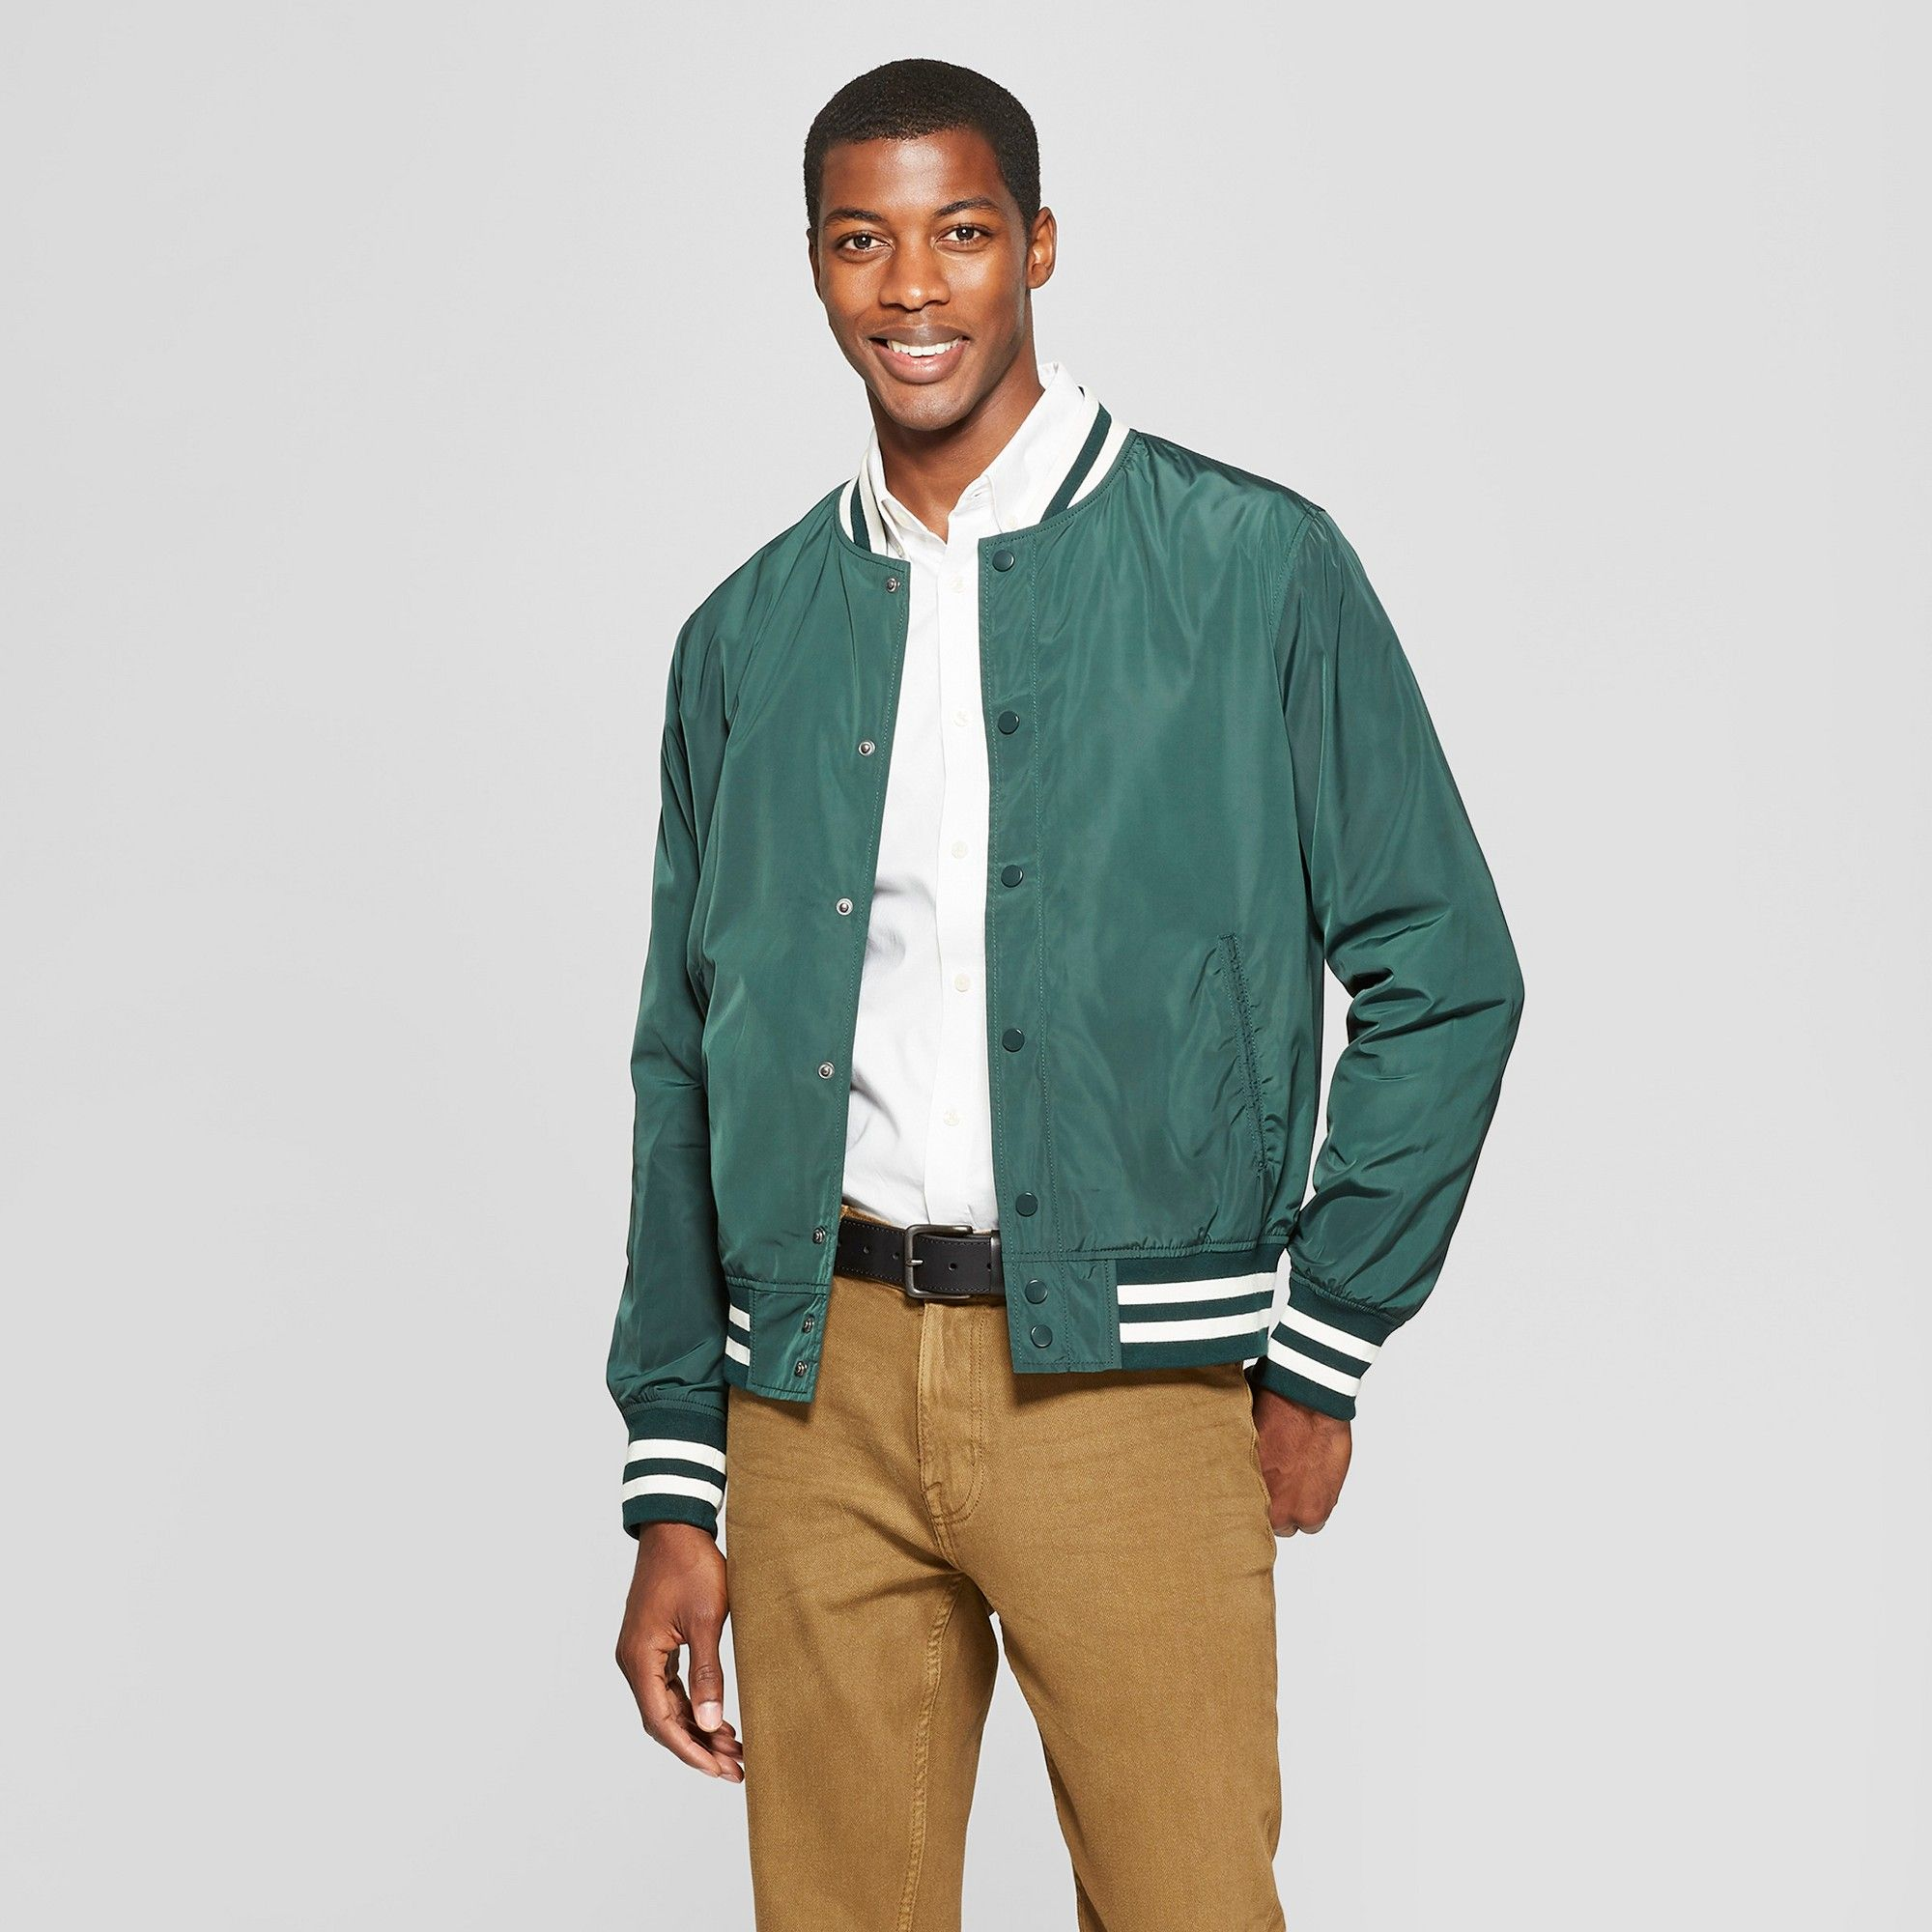 72dda767bf0 Men s Varsity Bomber Jacket - Goodfellow   Co Forest Green 2XL in ...